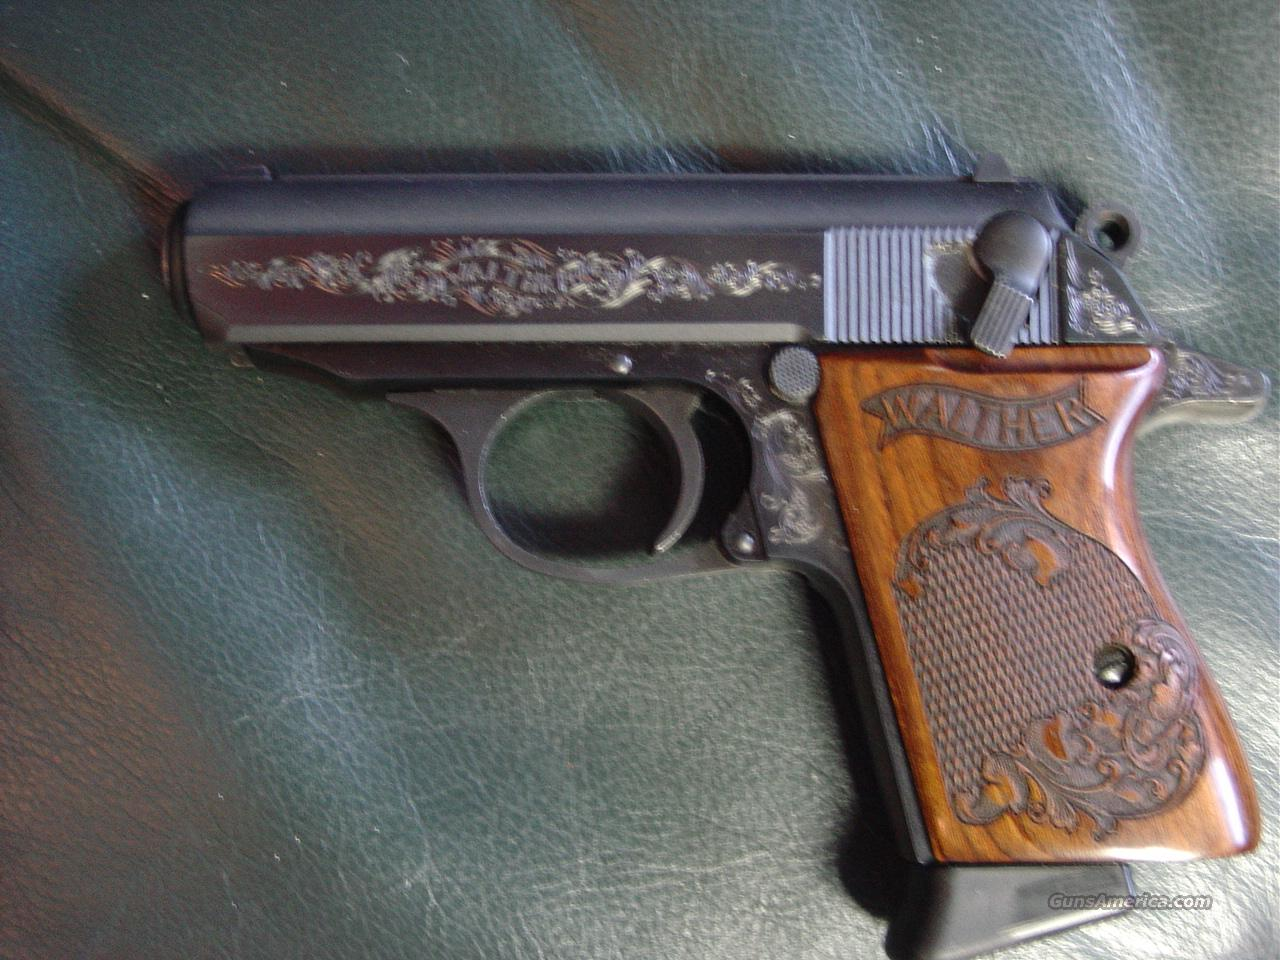 Walther PPK,380 auto,factory engraved,Ltd Edition,blue,beautiful Laser engraved grips,2 mags,manual,serial #'d box,very nice showpiece & shooter-looks new !!  Guns > Pistols > Walther Pistols > Post WWII > PPK Series